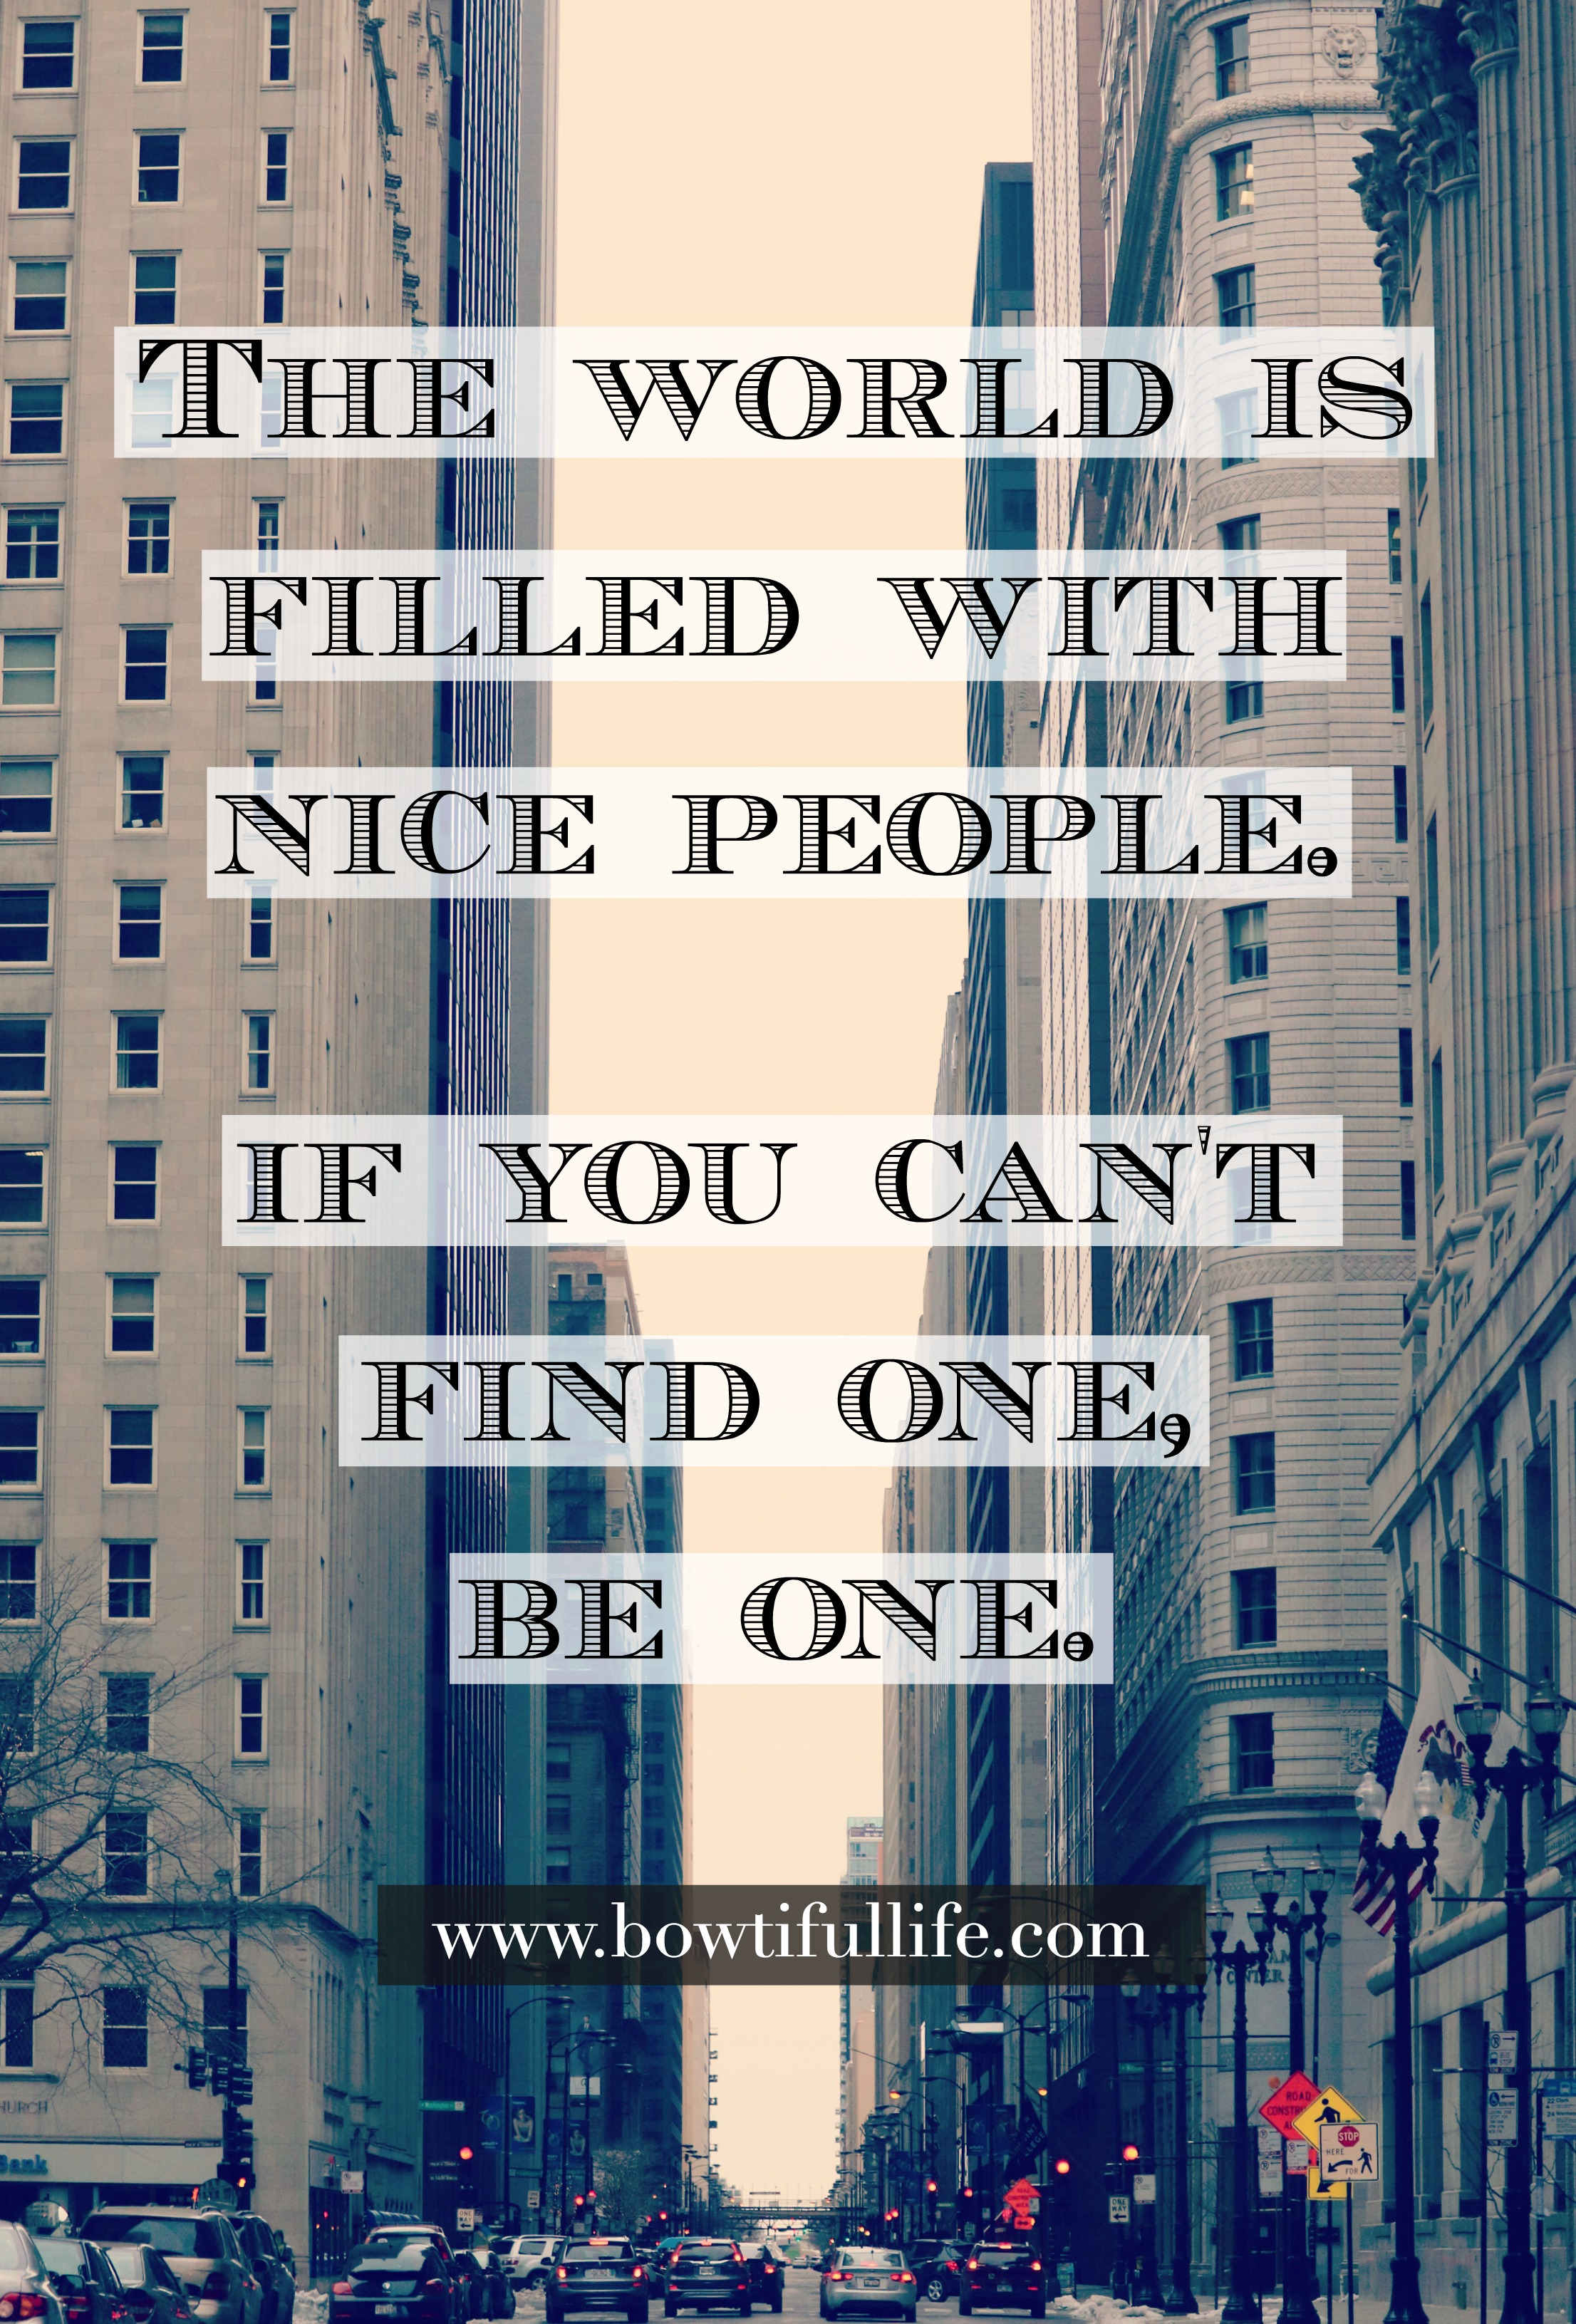 Bowtiful Life Wisdom Wednesday 2016 03-30 The World Is Filled With Nice People